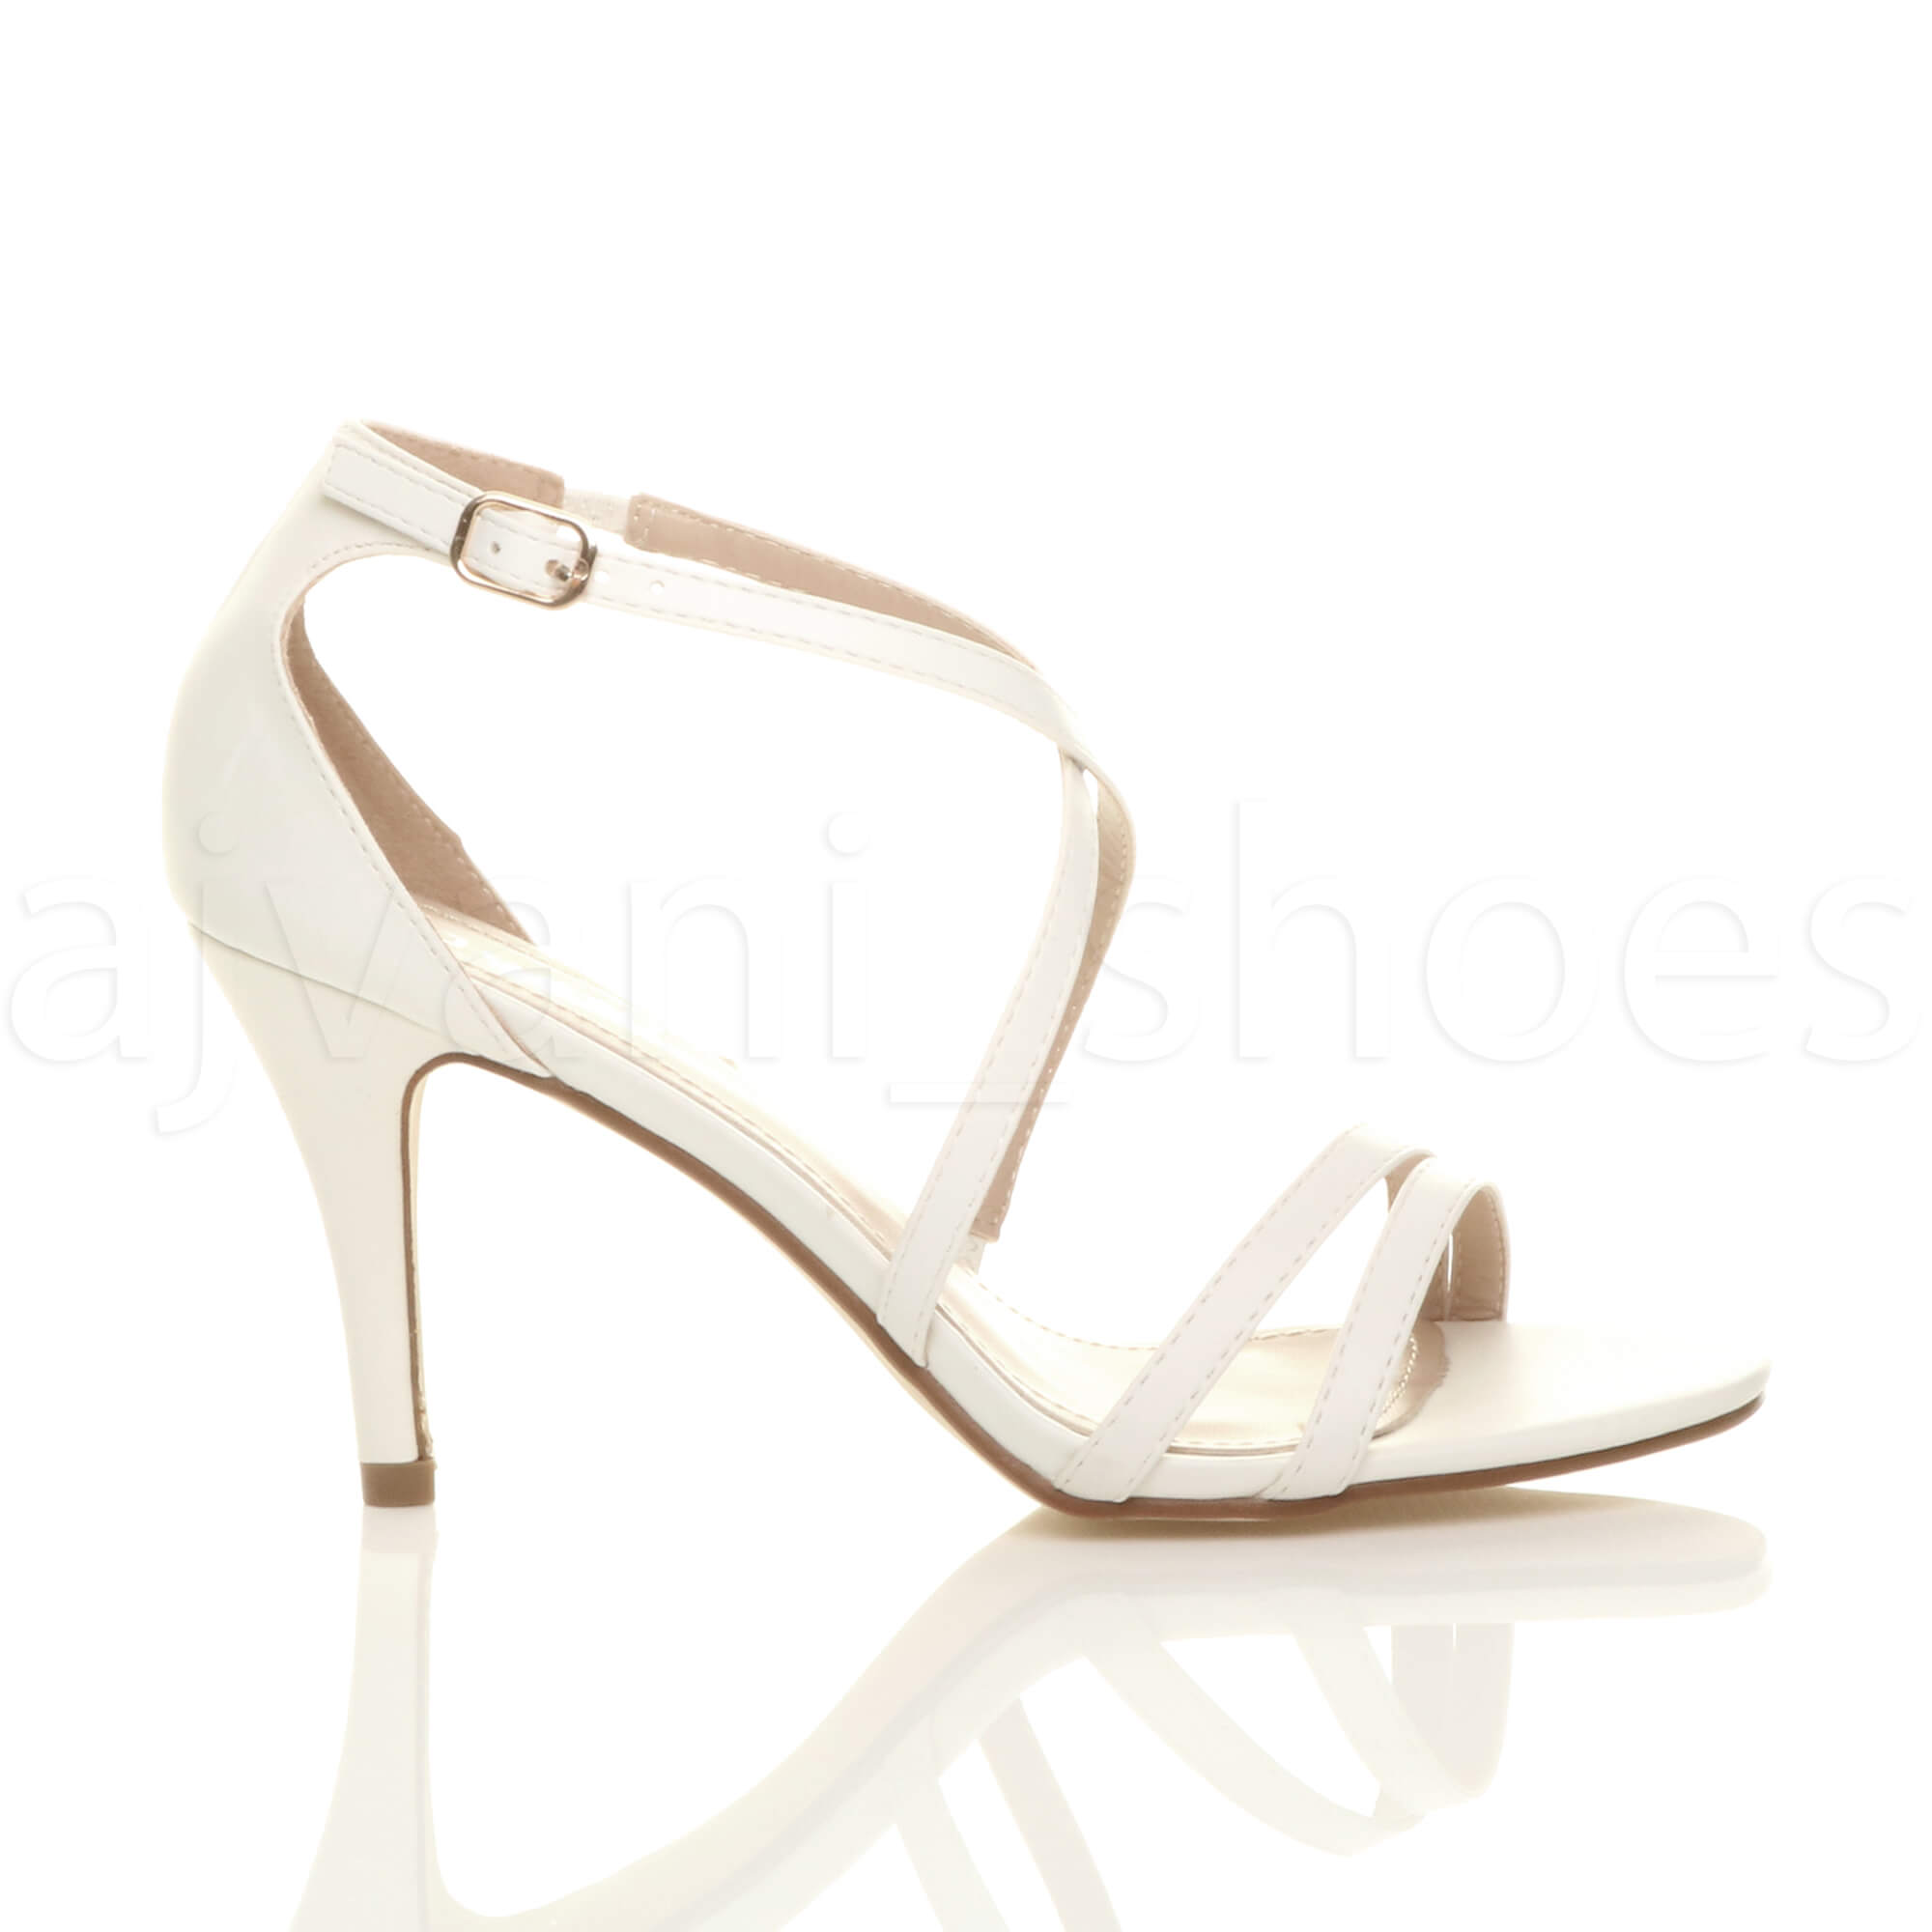 WOMENS-LADIES-MID-HIGH-HEEL-STRAPPY-CROSSOVER-WEDDING-PROM-SANDALS-SHOES-SIZE thumbnail 164